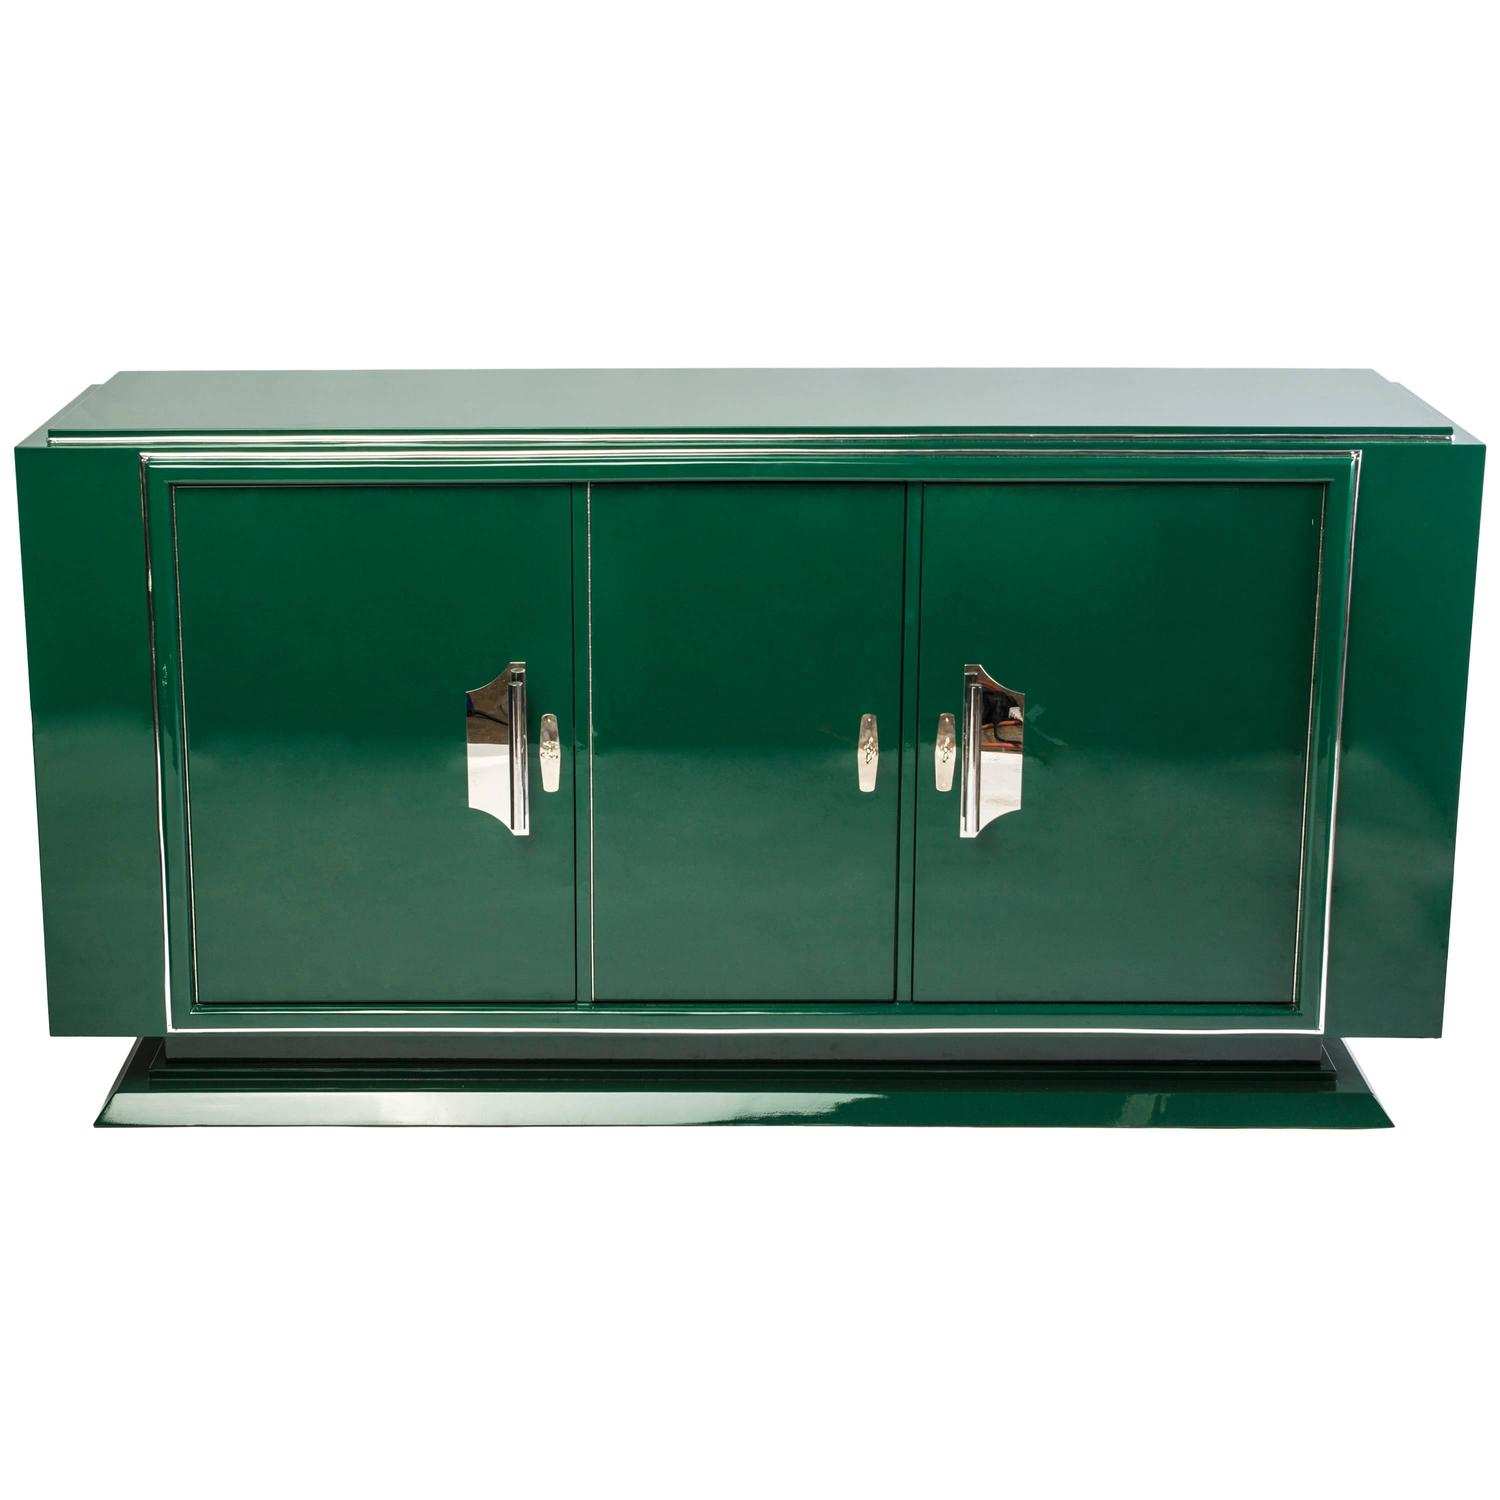 Impressive Art Deco Sideboard in Mint Green For Sale at 1stdibs